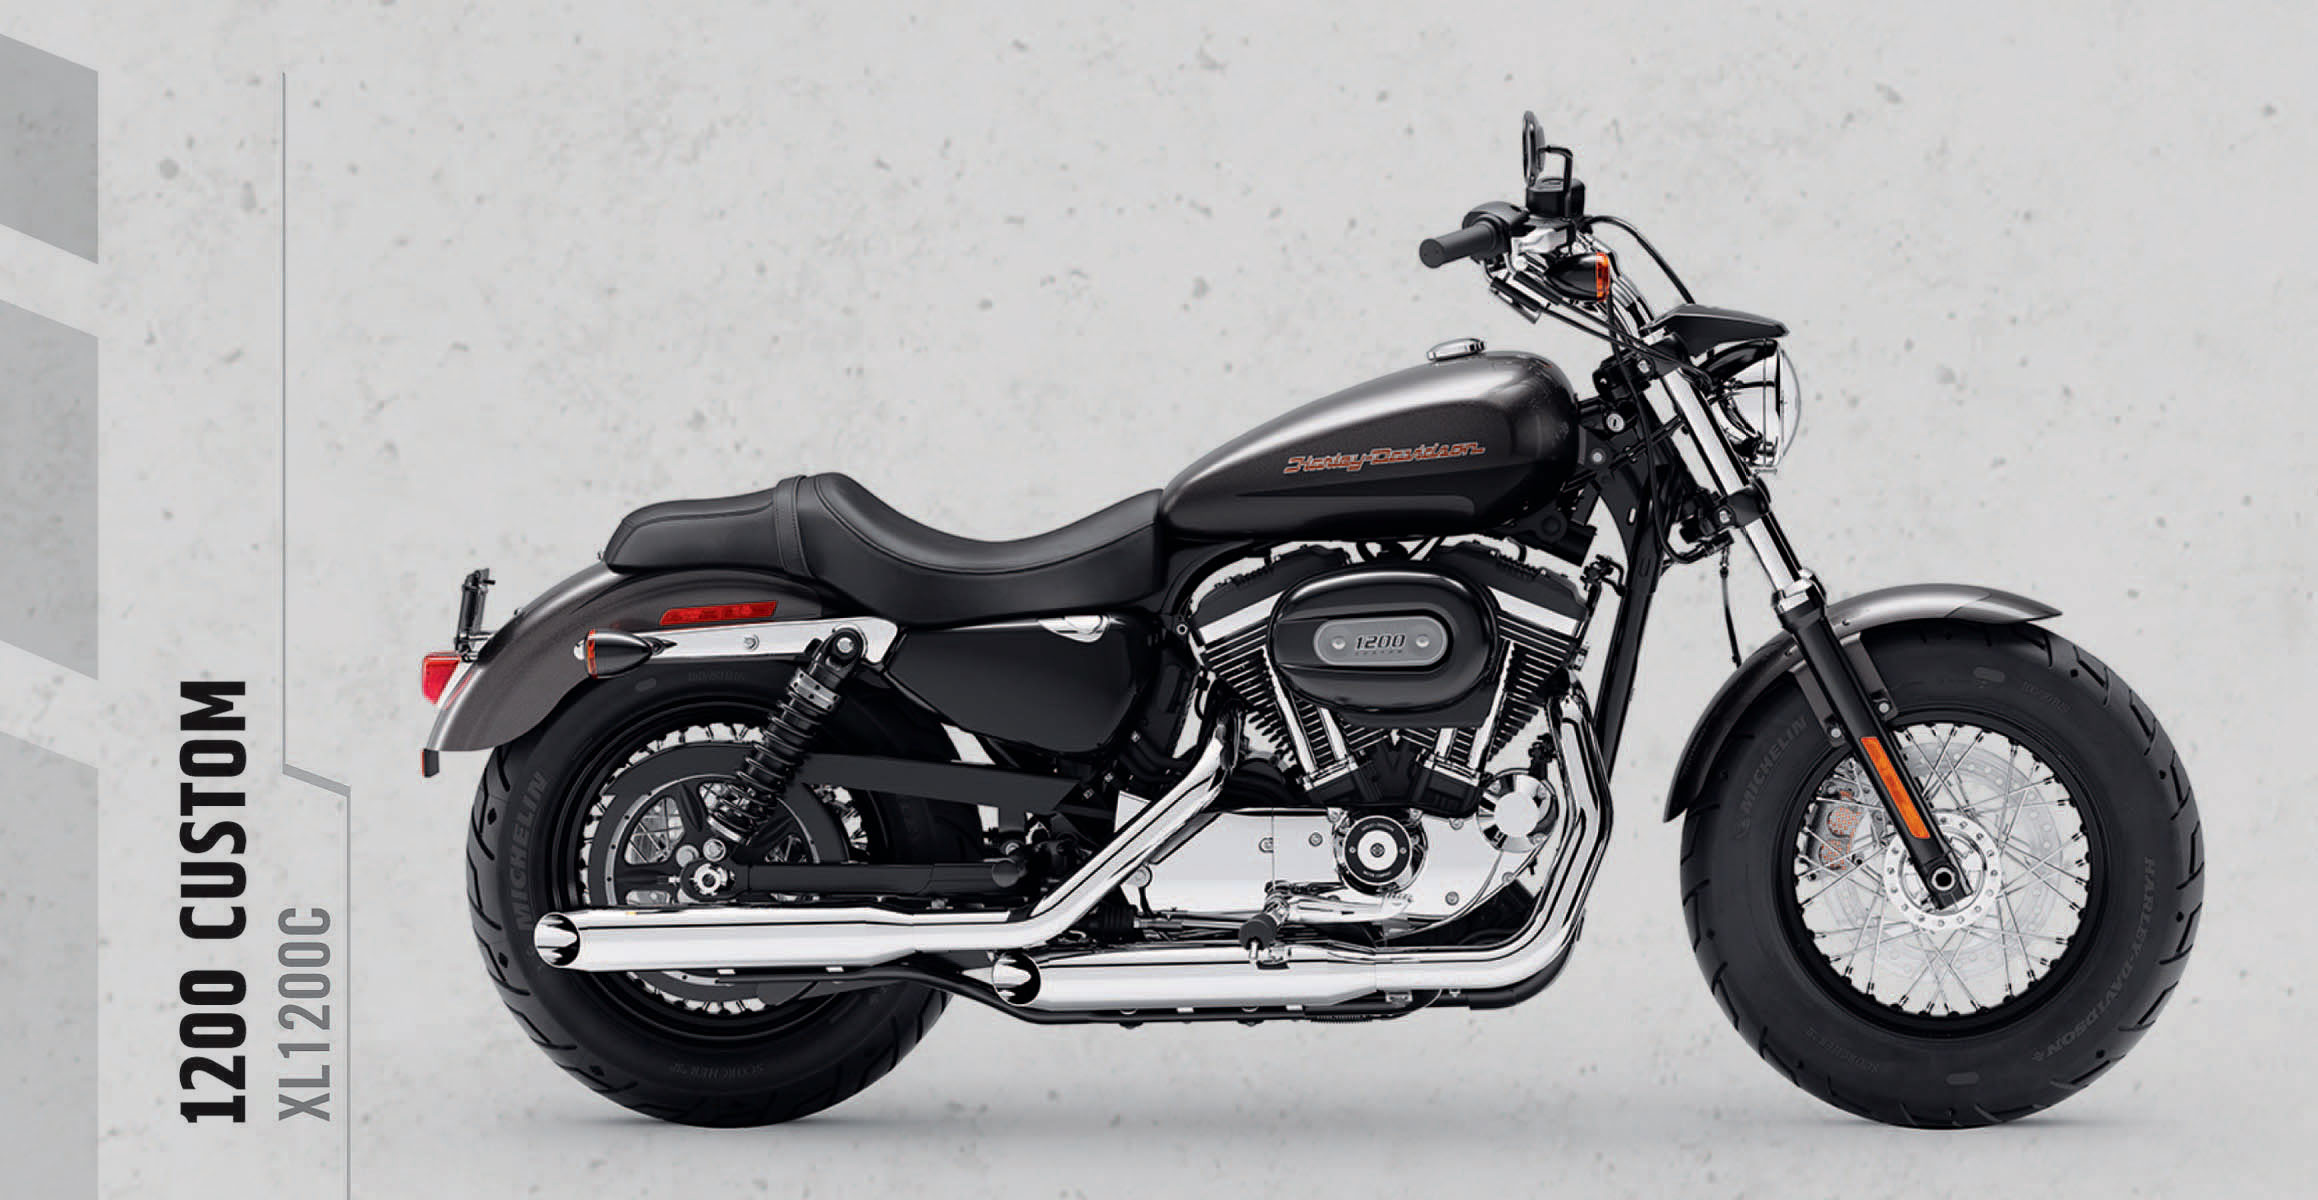 1200 Custom   You get the 1200cc Evolution® engine, chrome shorty dual exhaust, and bold graphics on the tank. And that's just the start. Where it goes from there is up to you.